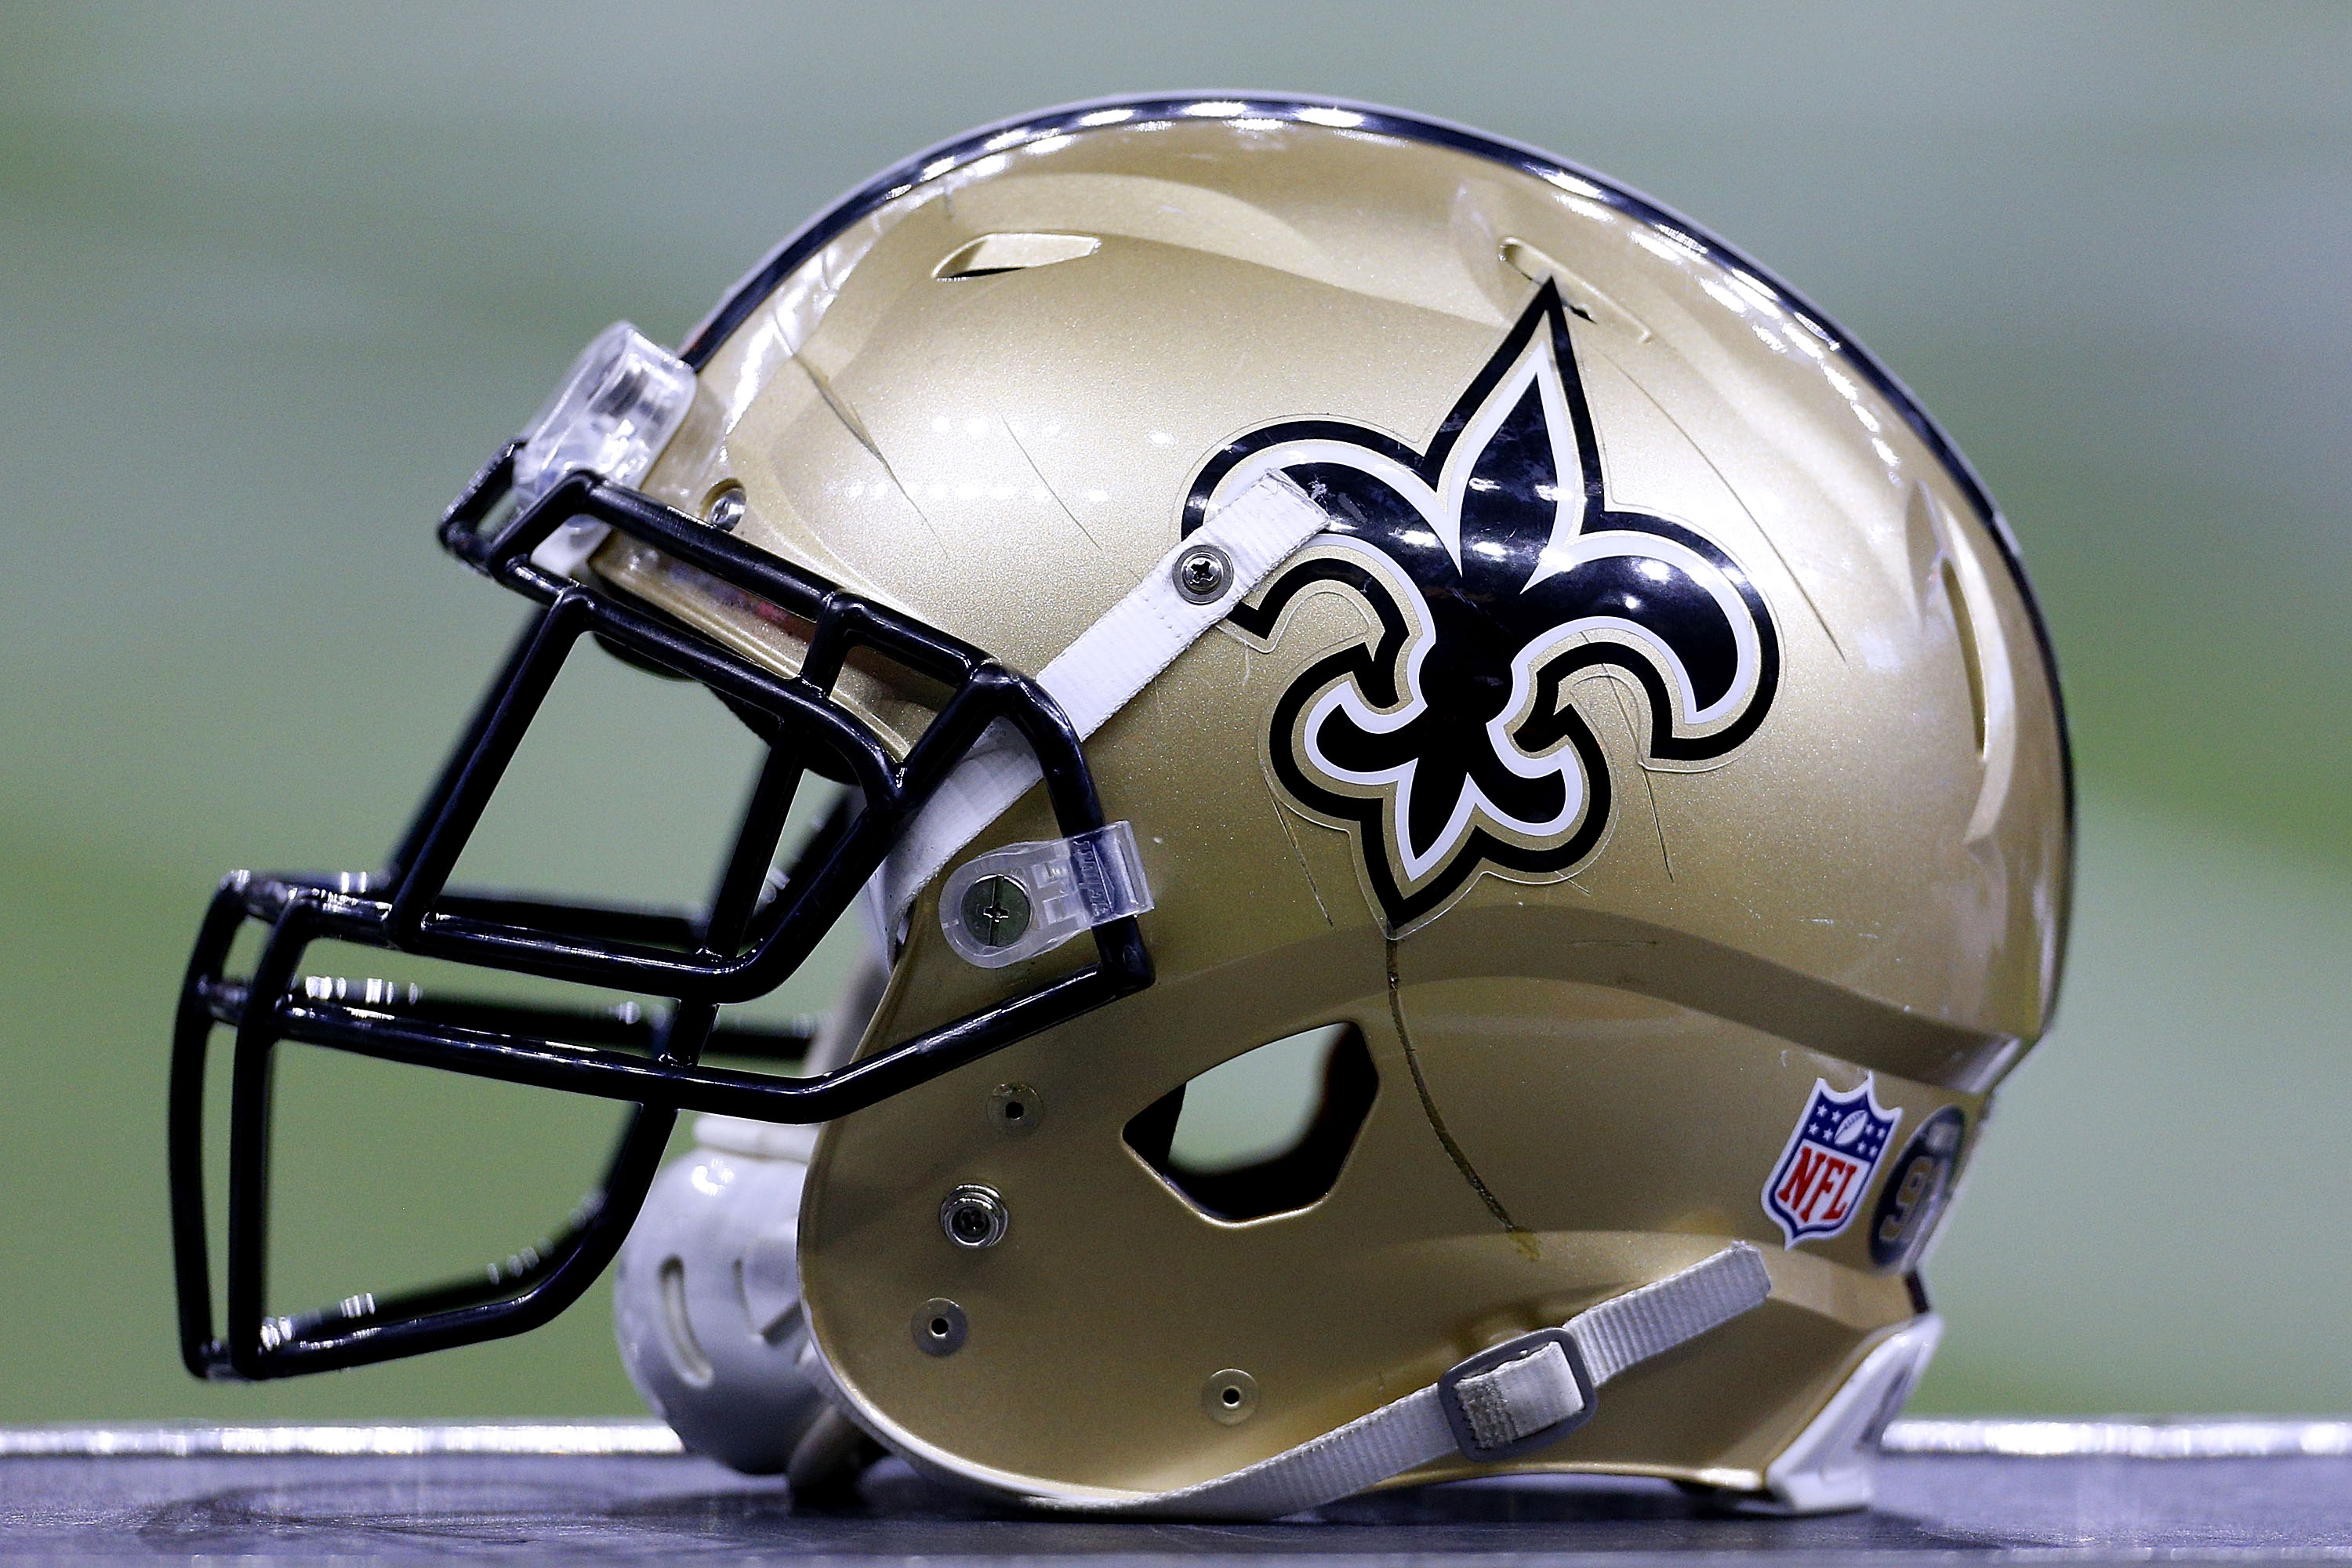 More questions than answers for the Saints